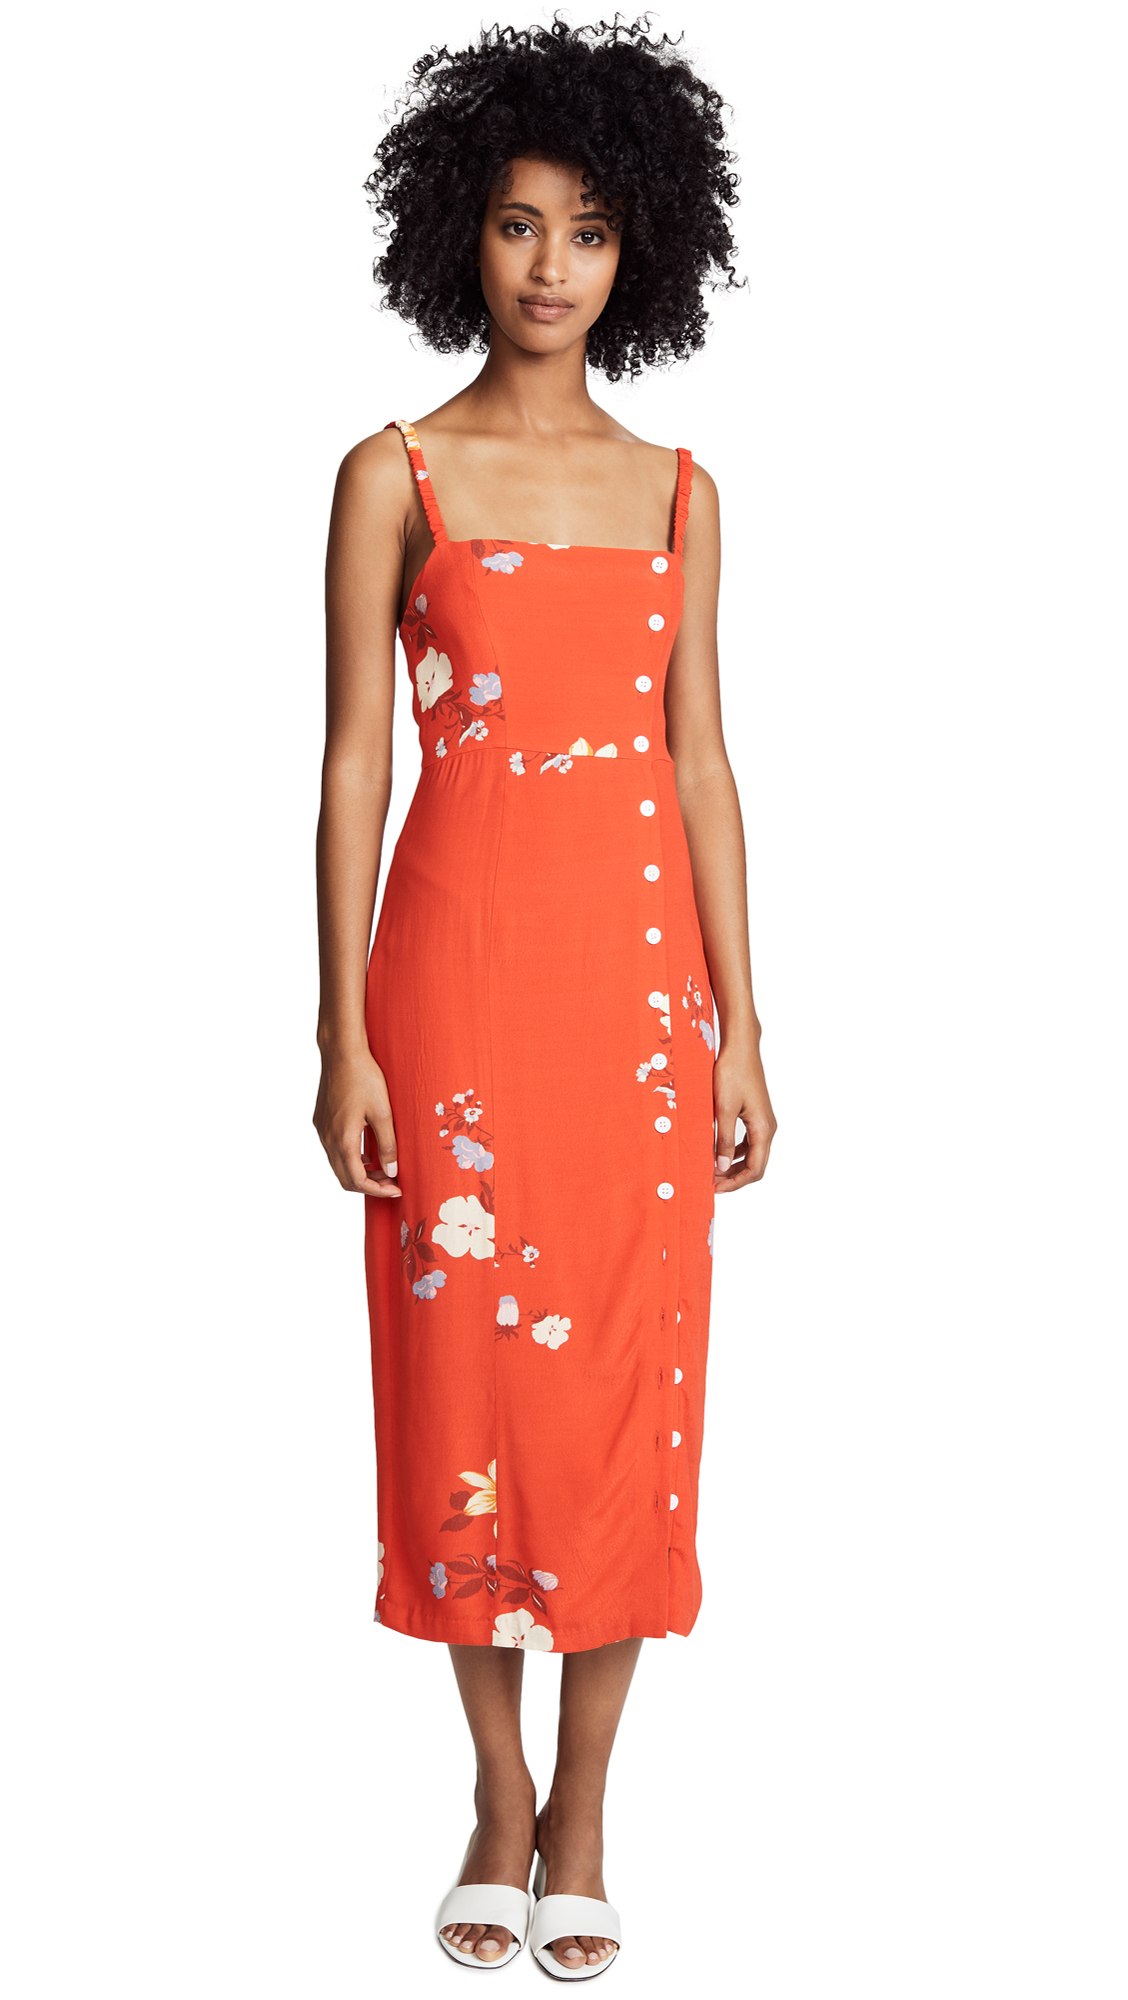 CAPULET Janette Midi Dress in Red Floral